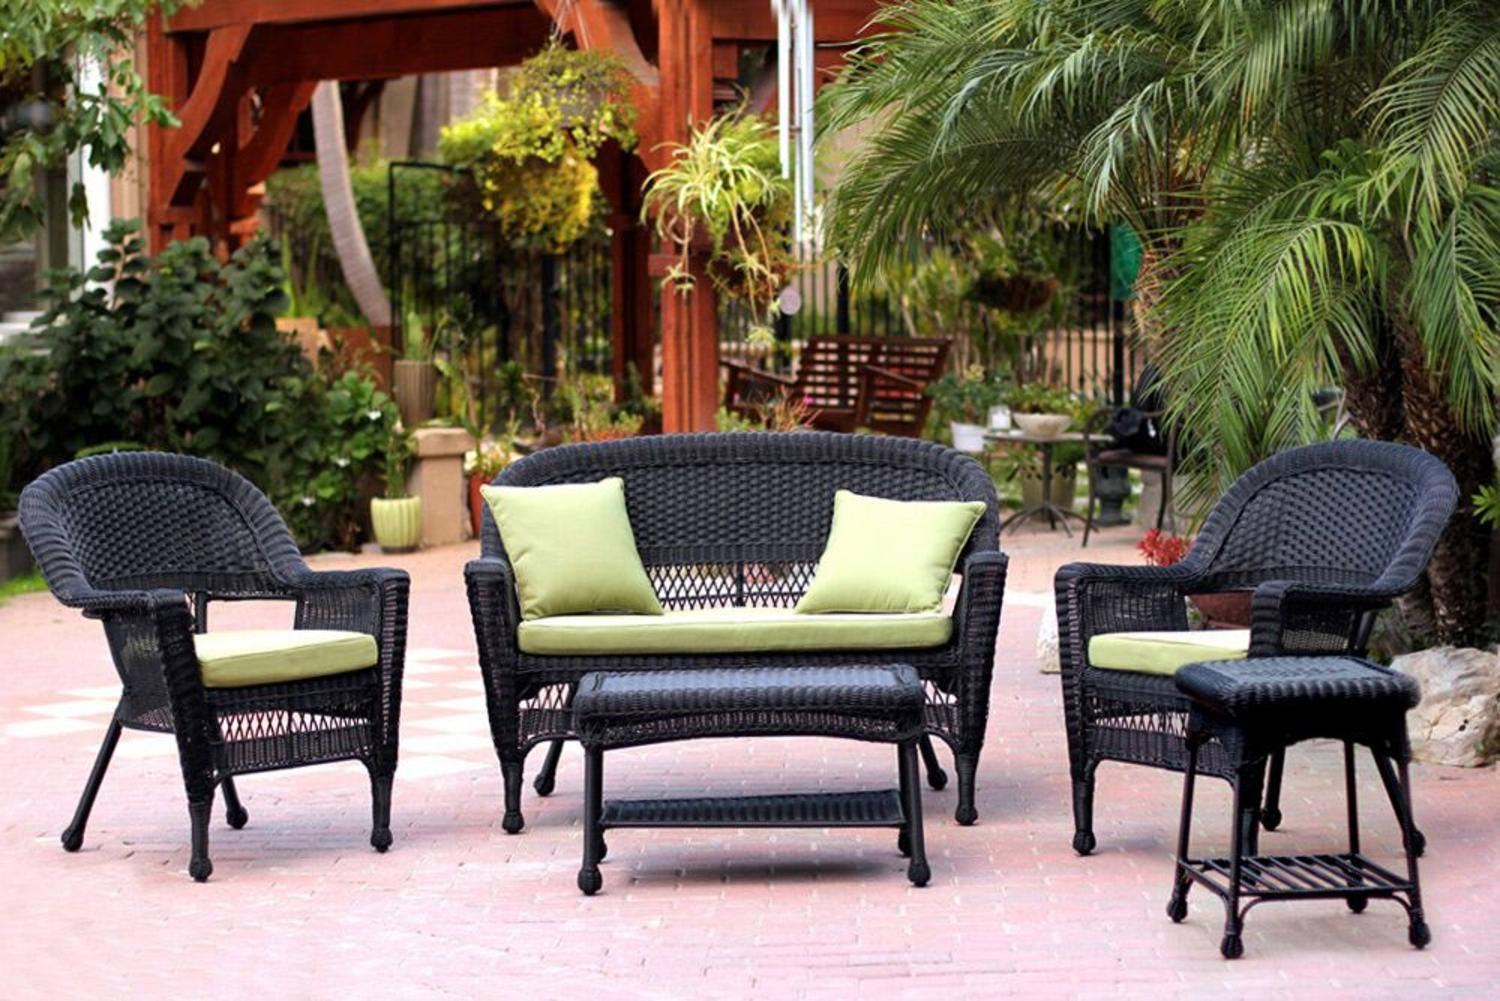 5-Piece Black Resin Wicker Patio Chair, Loveseat & Table Furniture Set Green Cushions by CC Outdoor Living